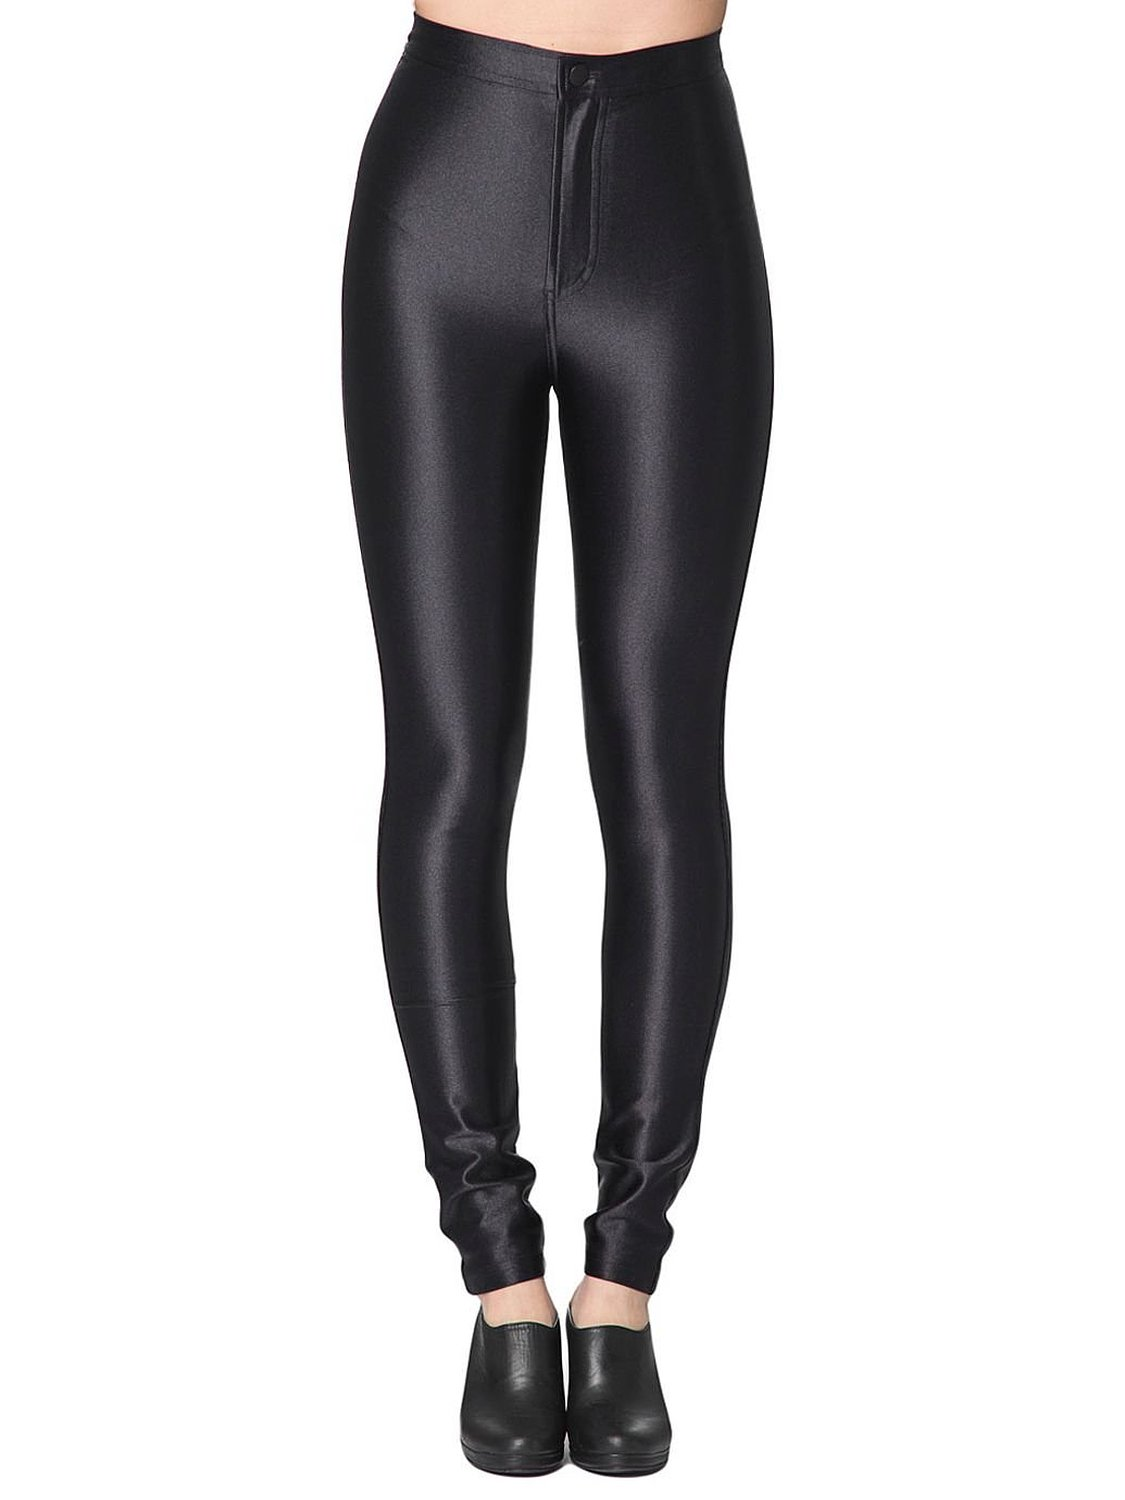 American apparel the disco pant at amazon women's clothing store: leggings pants